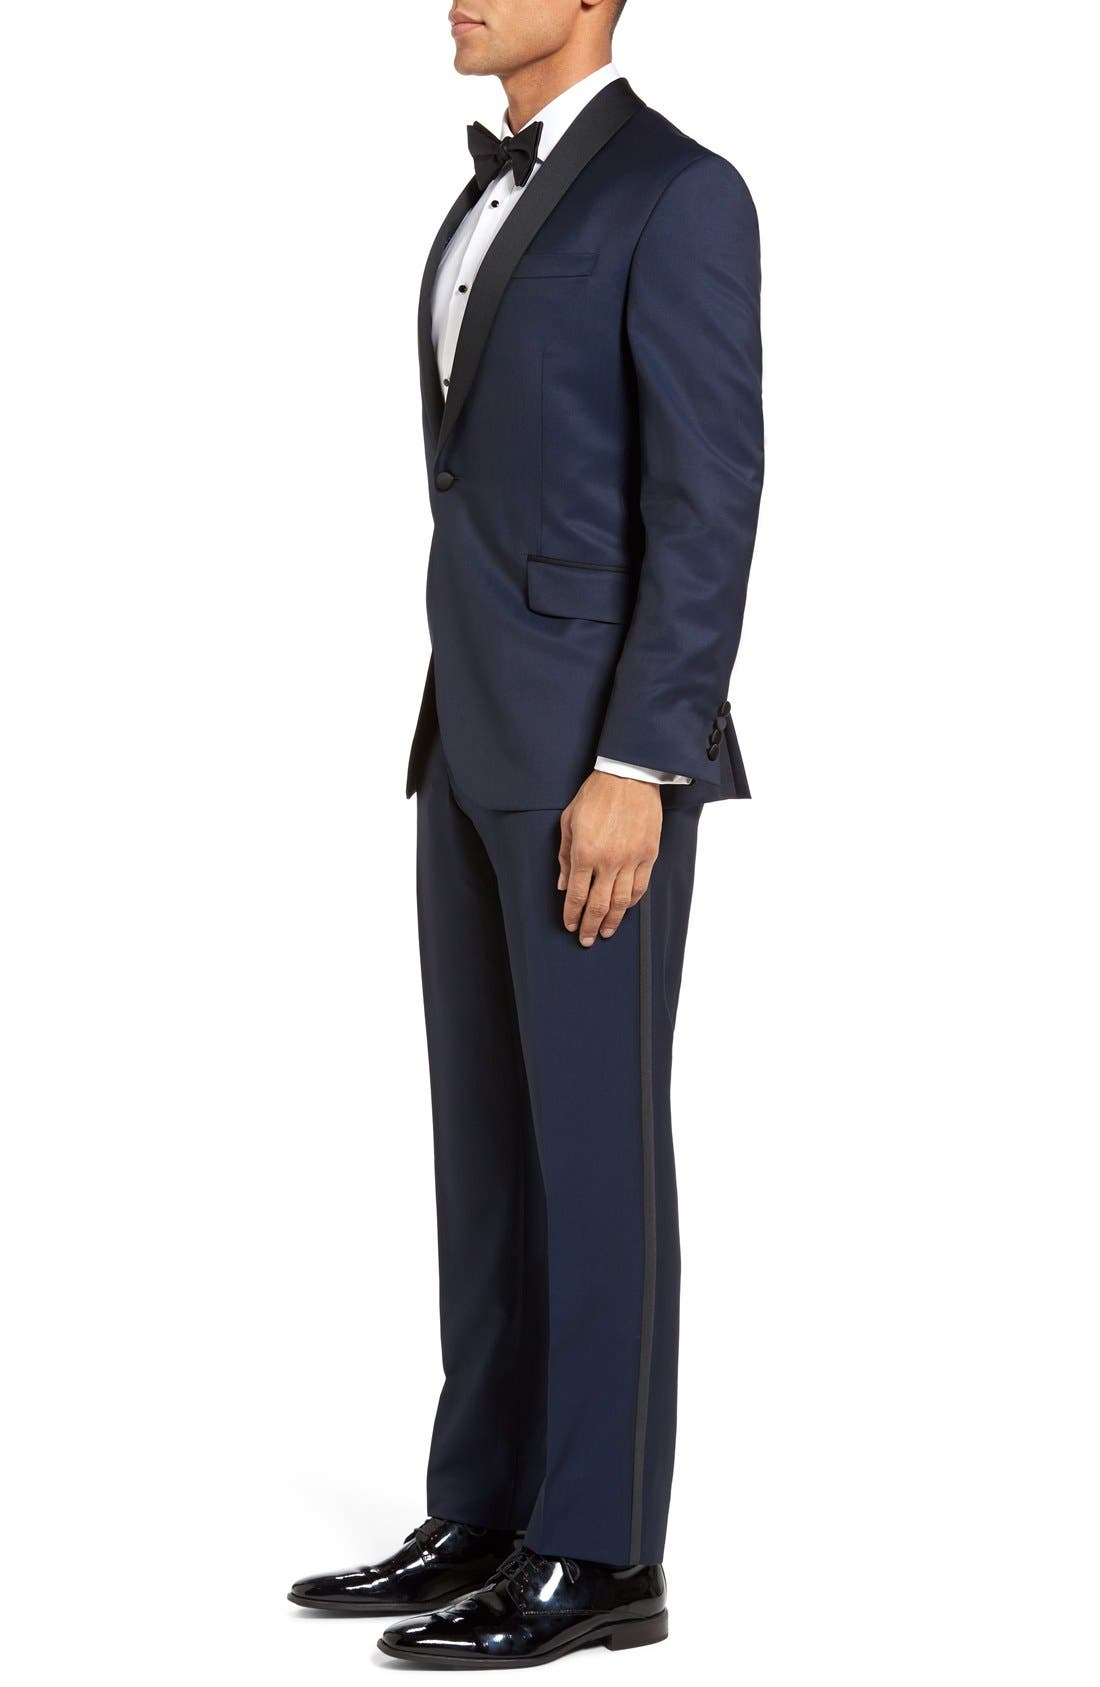 'Josh' Trim Fit Navy Shawl Lapel Tuxedo,                             Alternate thumbnail 3, color,                             Navy Blue